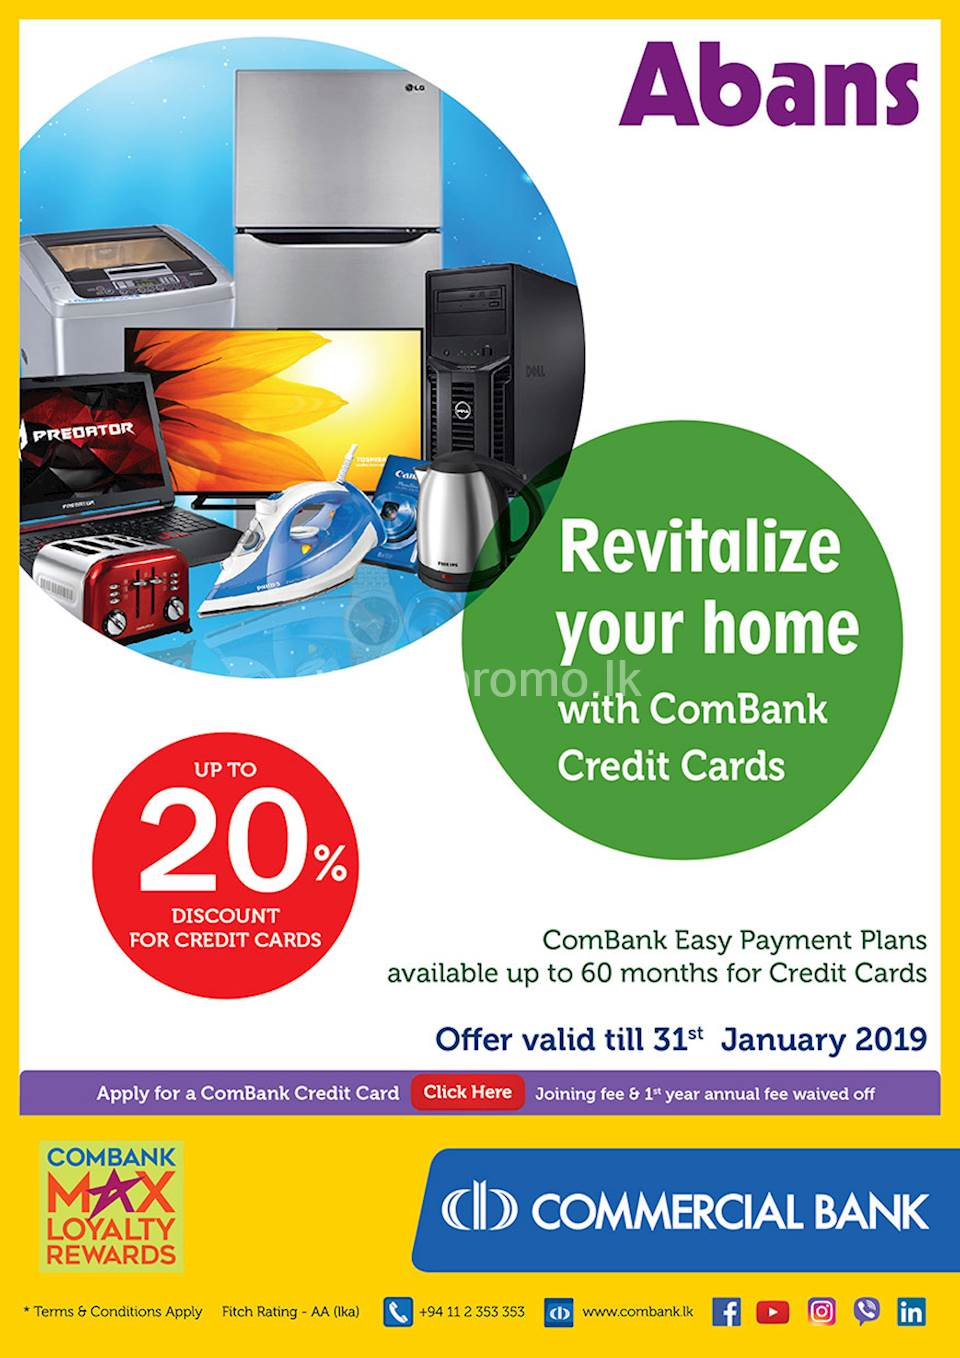 Revitalize your home with ComBank Credit Cards.